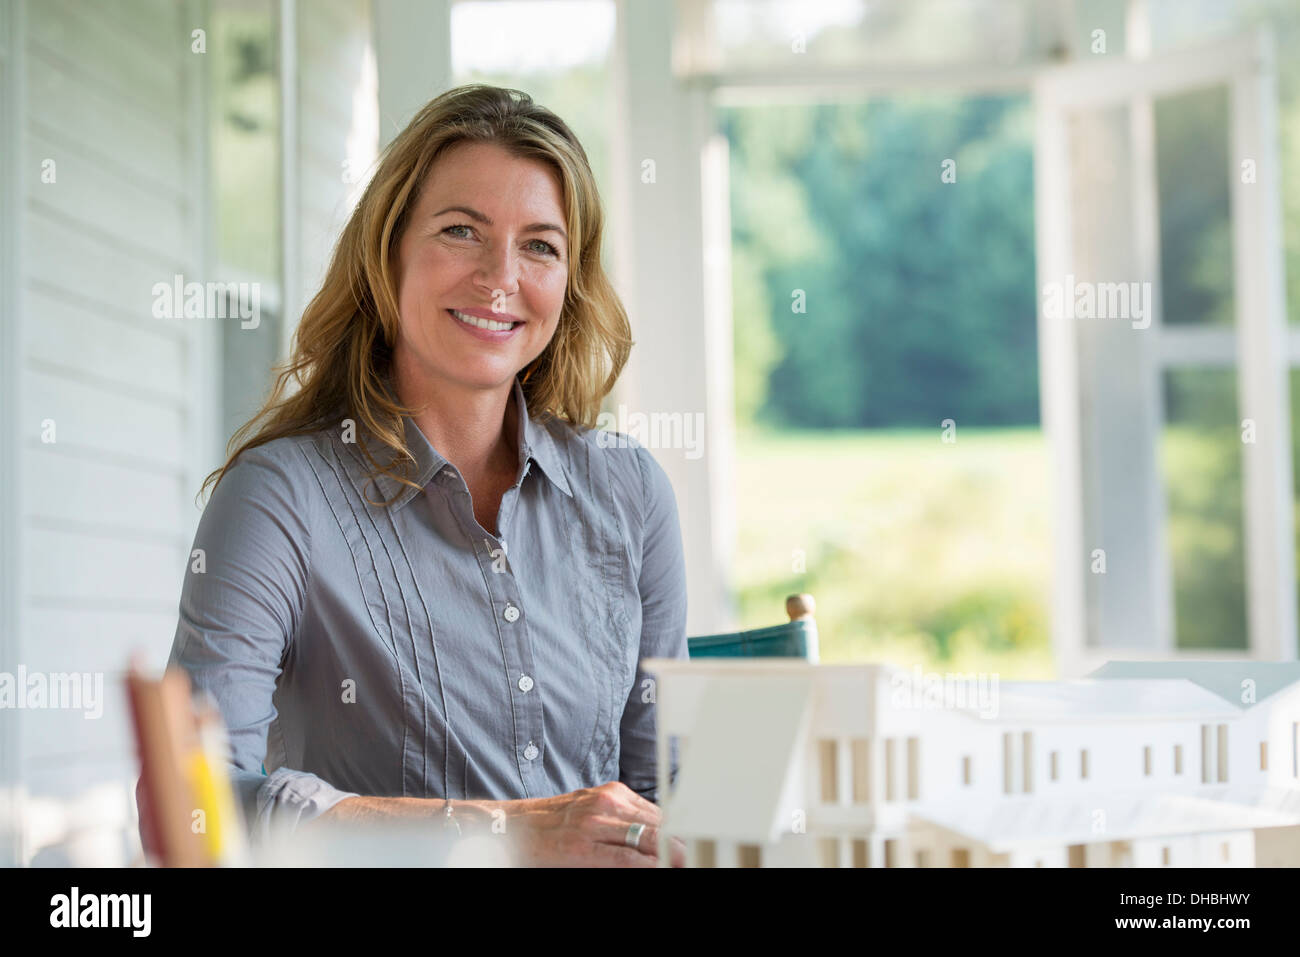 A farmhouse kitchen. A model of a house on the table. Designing a house. A woman sitting holding a pen. - Stock Image